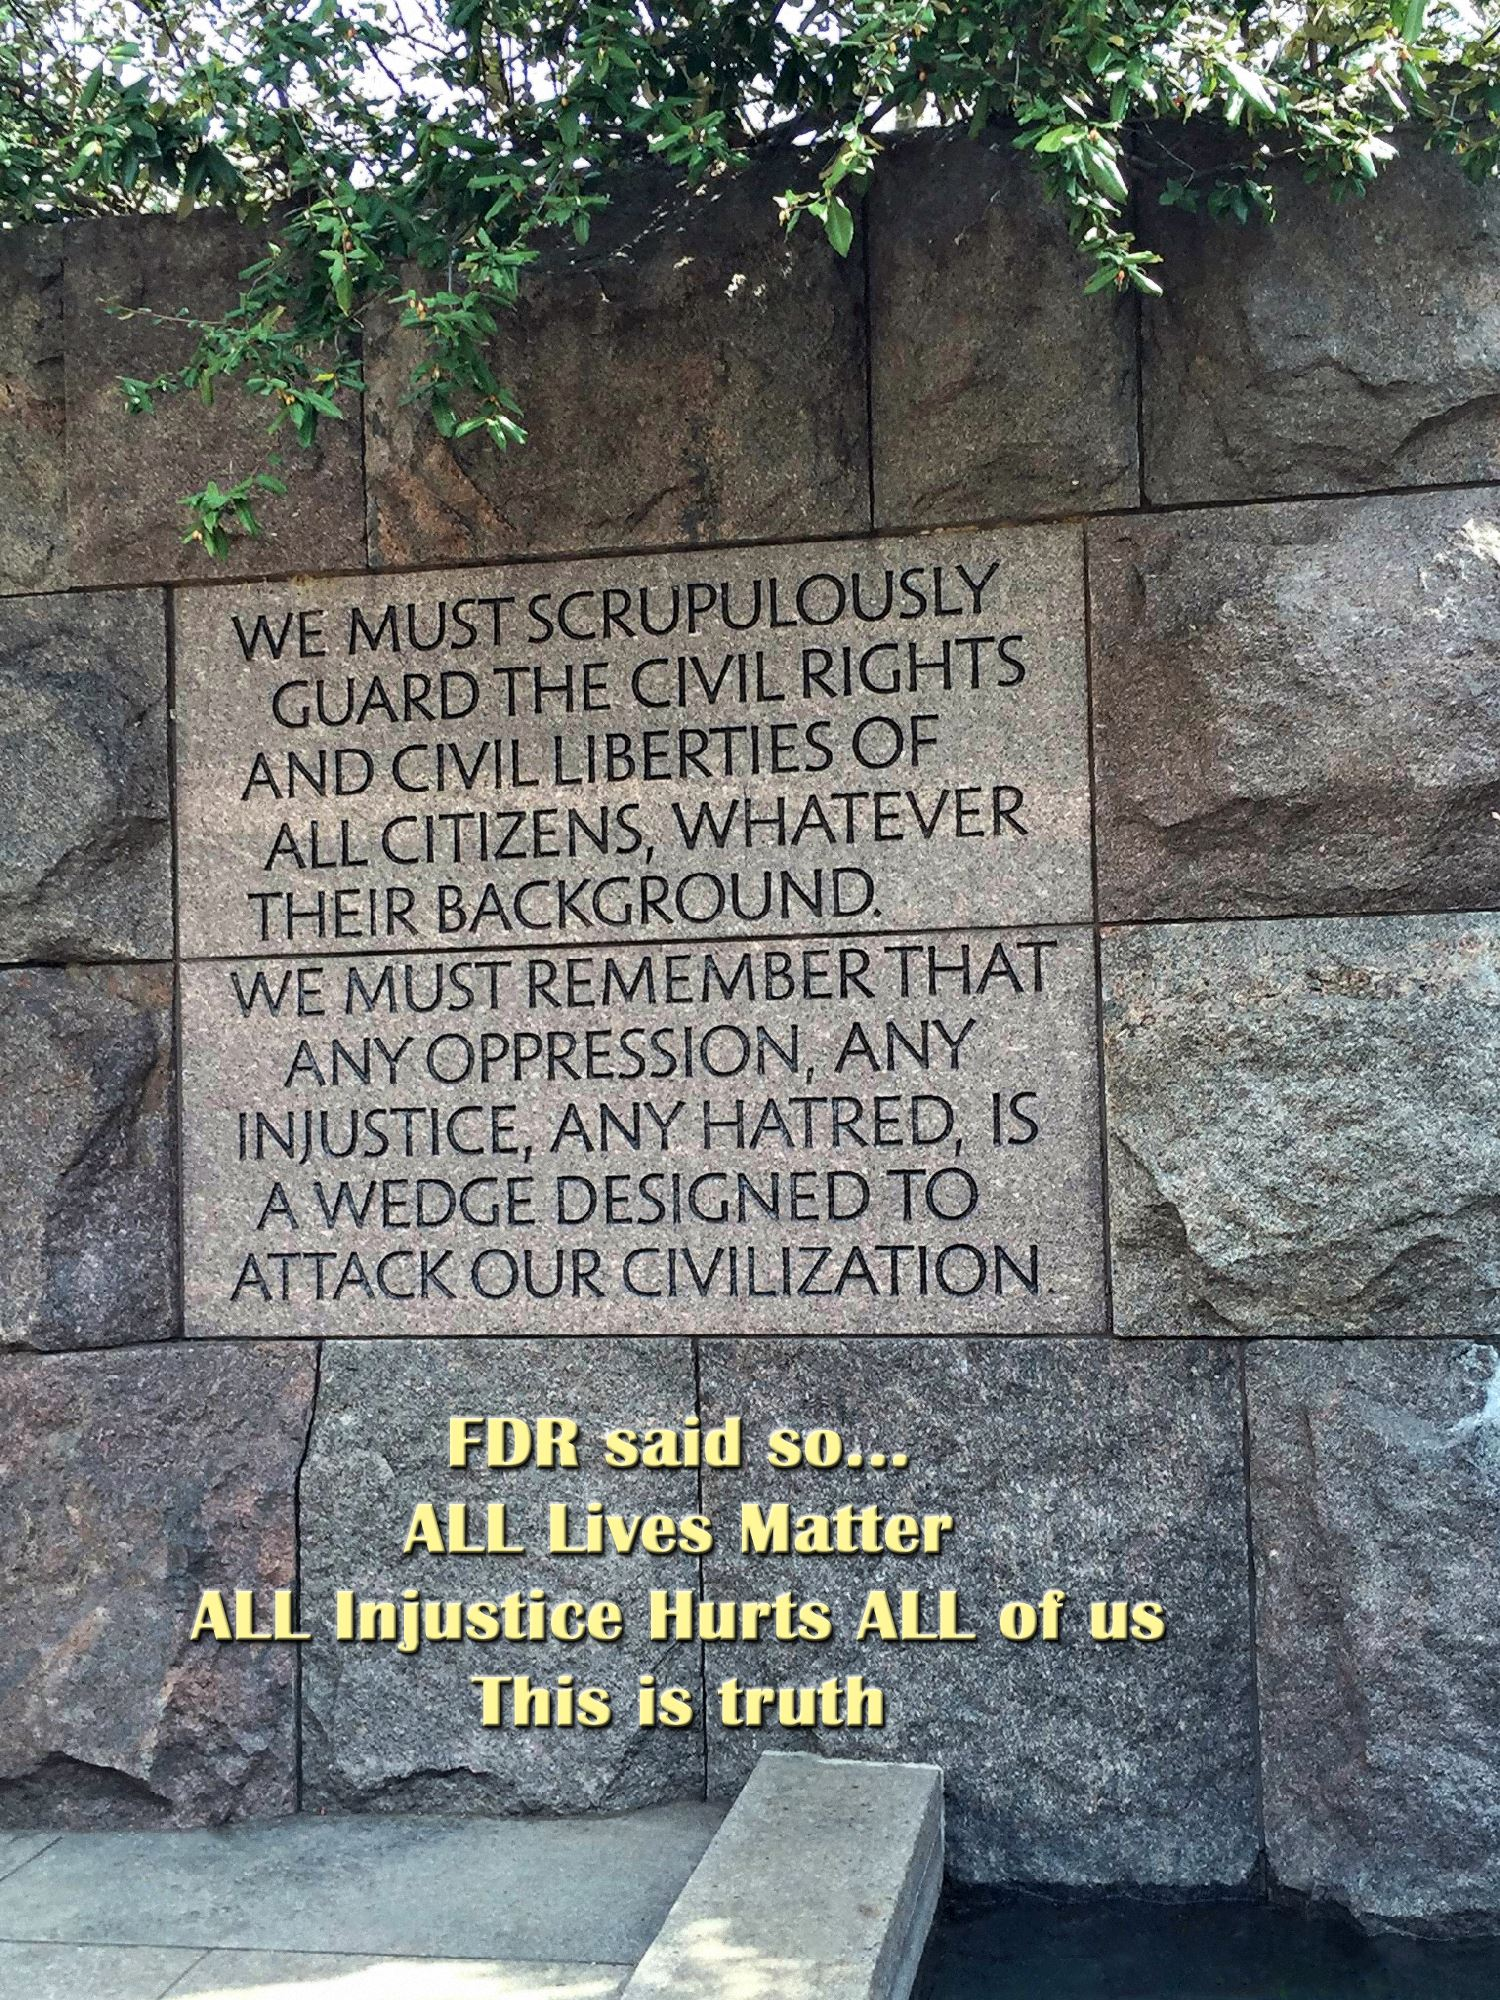 00 fdr quote 070416